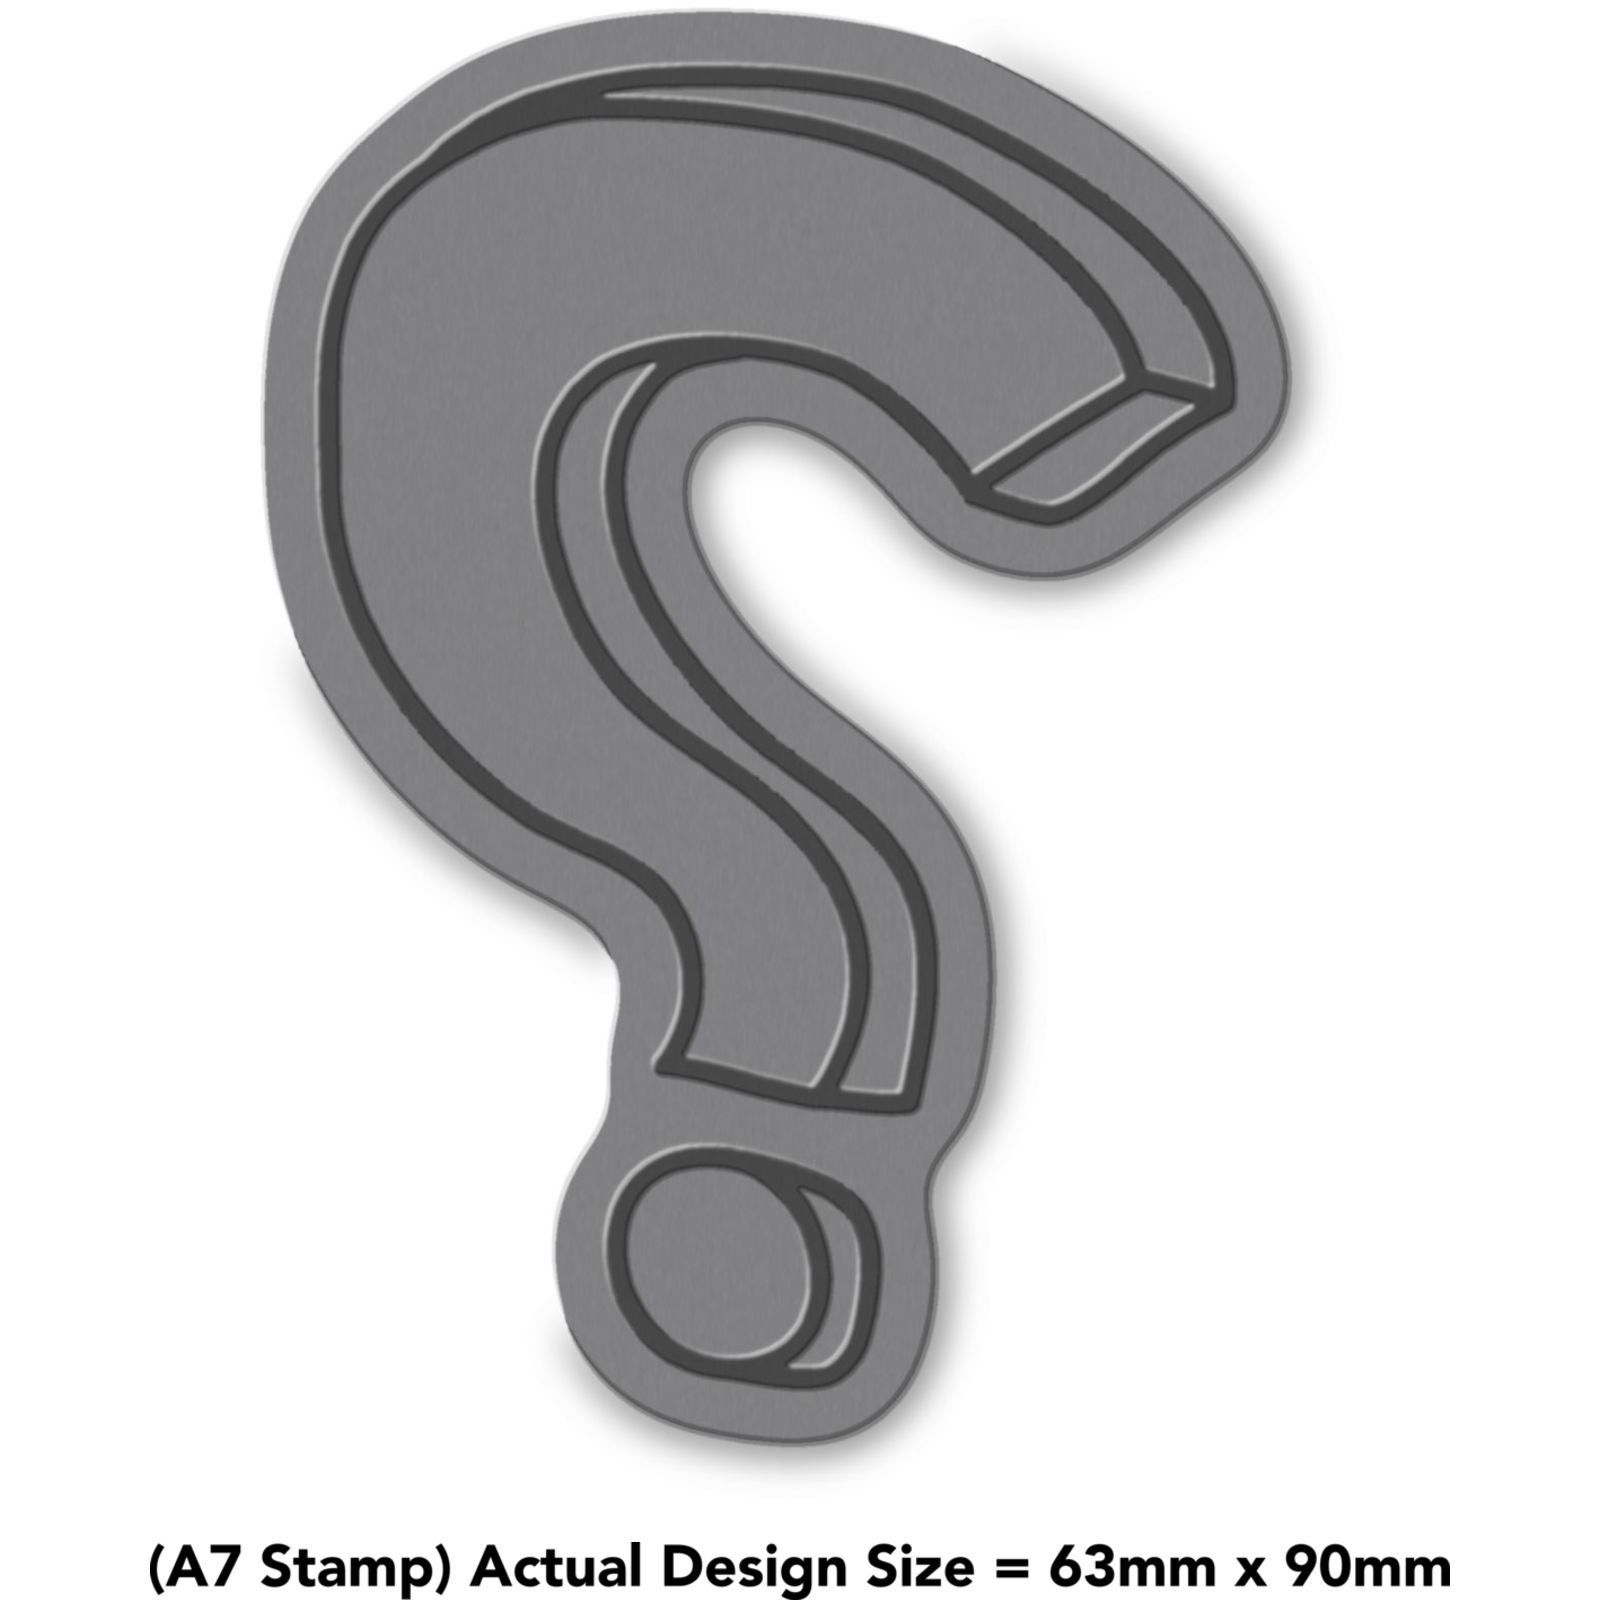 'Question Mark' Rubber Stamp (RS018966) | eBay